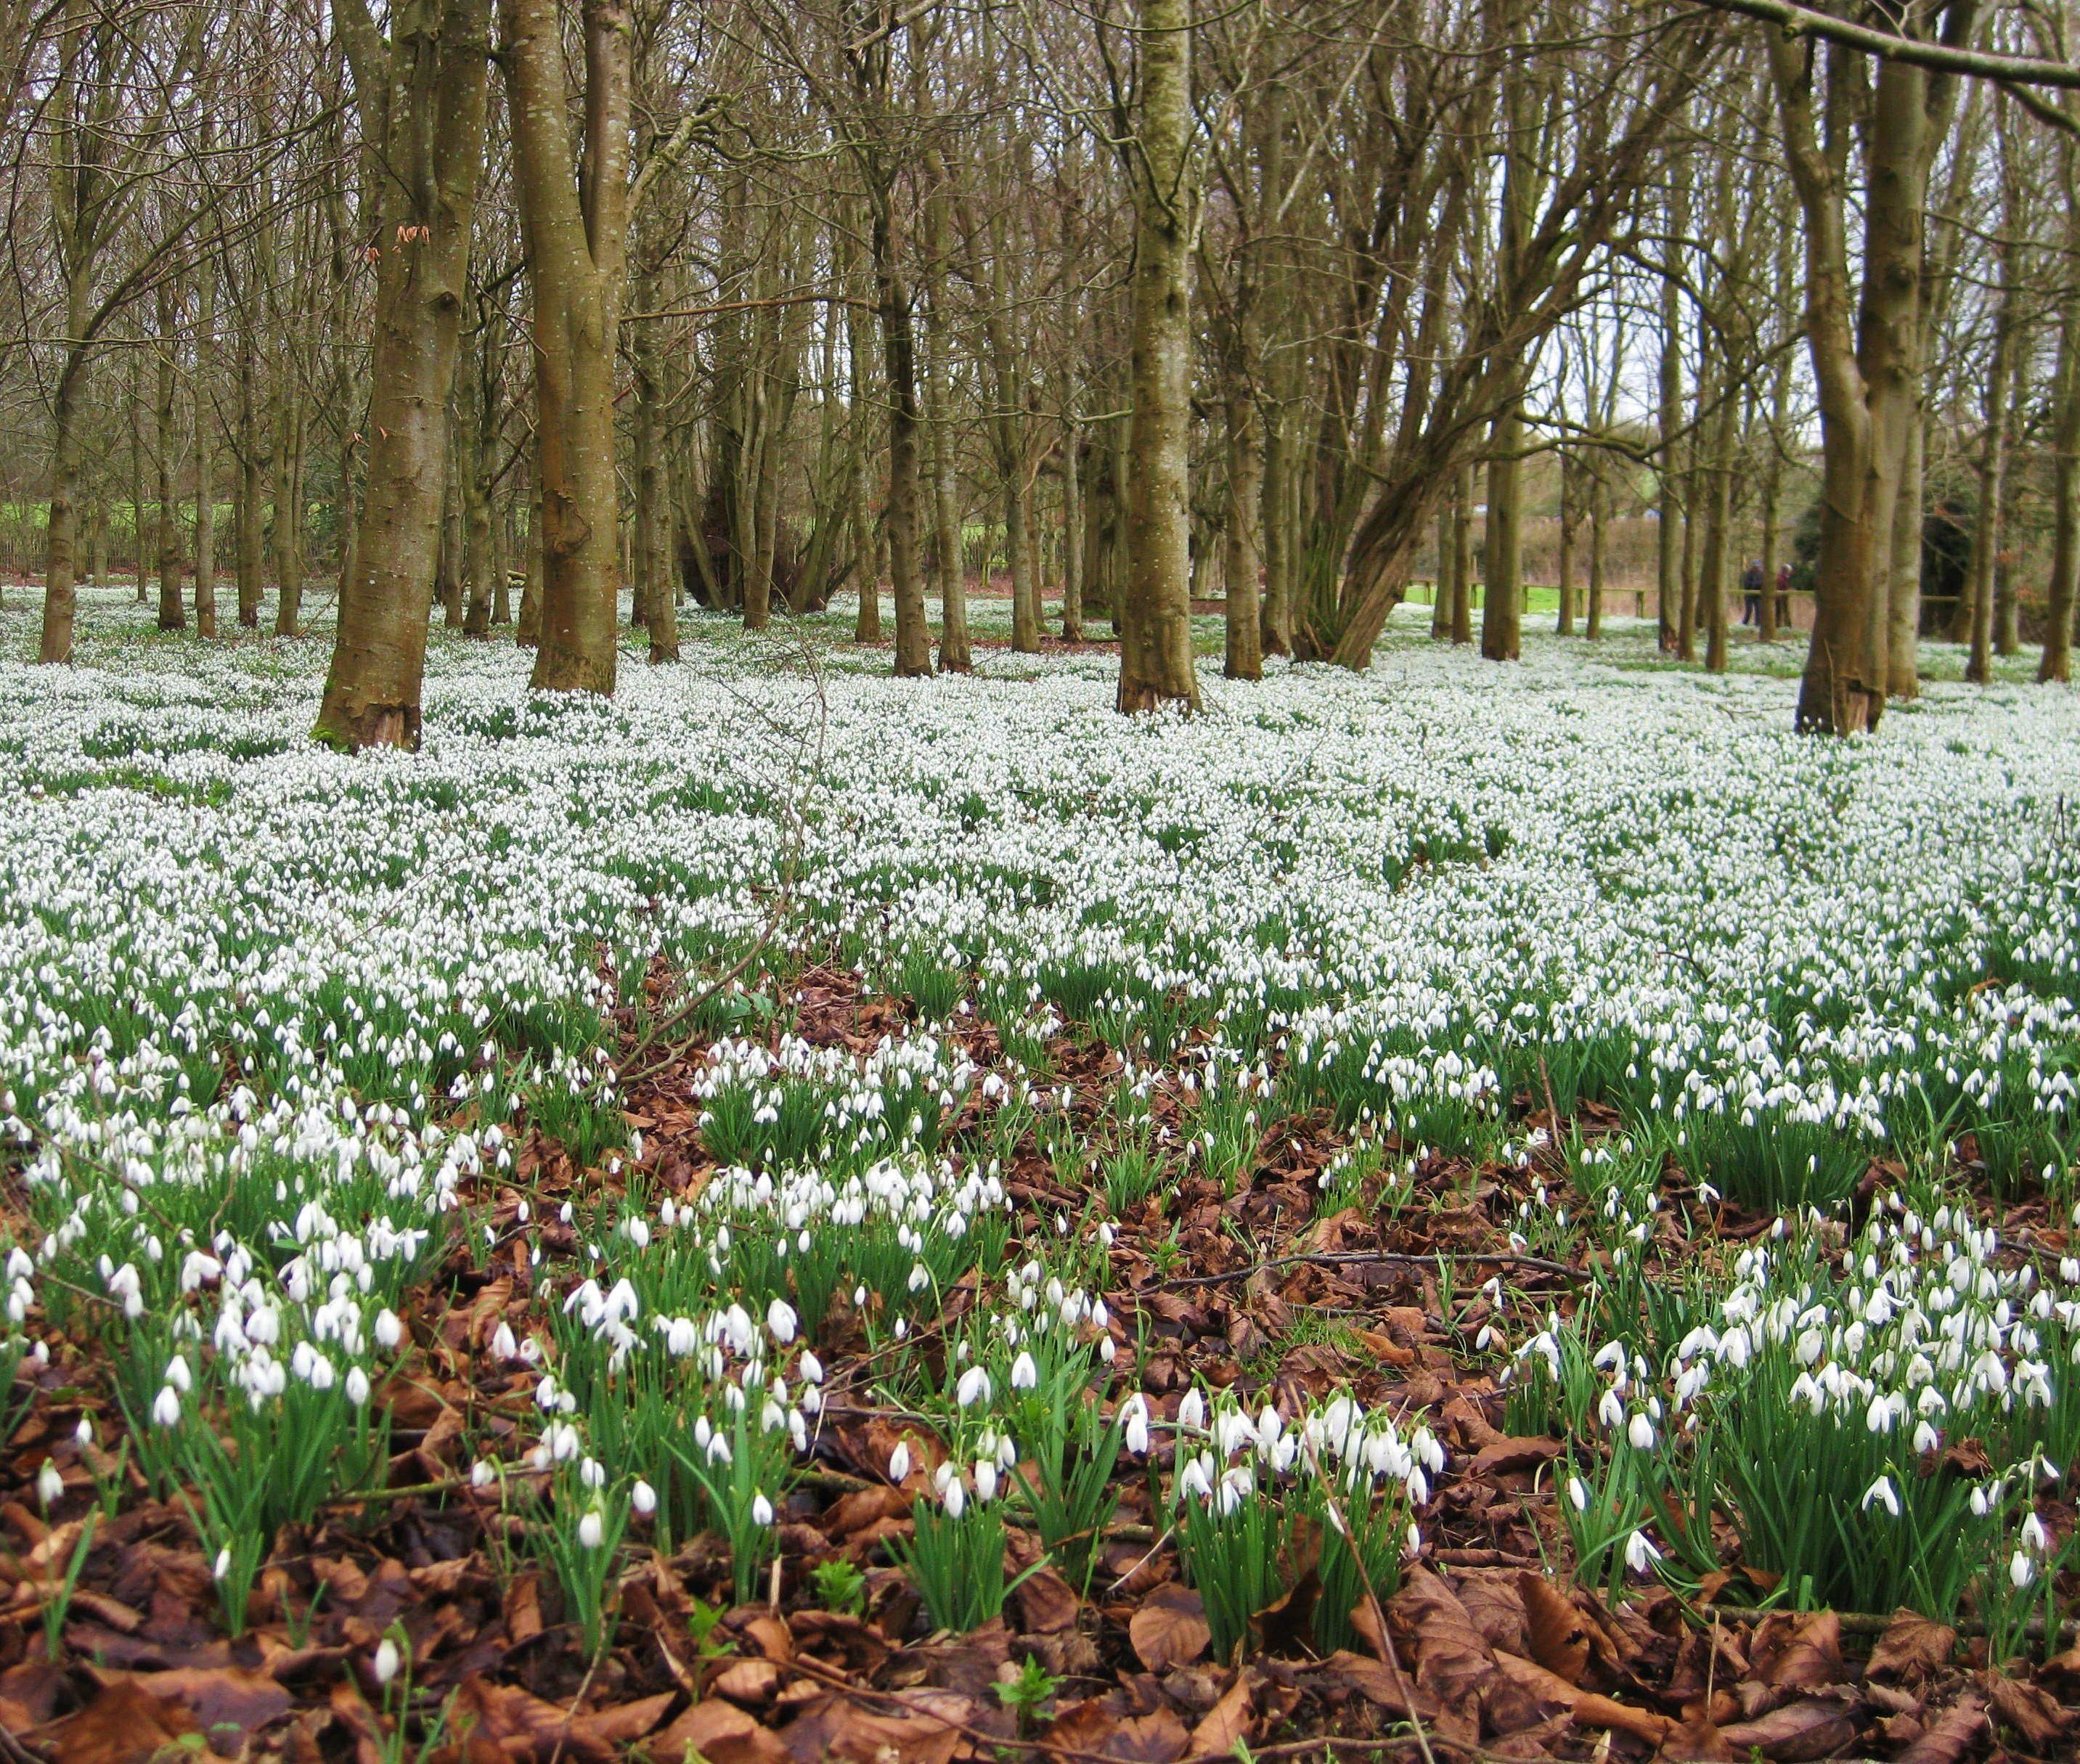 Snowdrops covering the floor at Welford